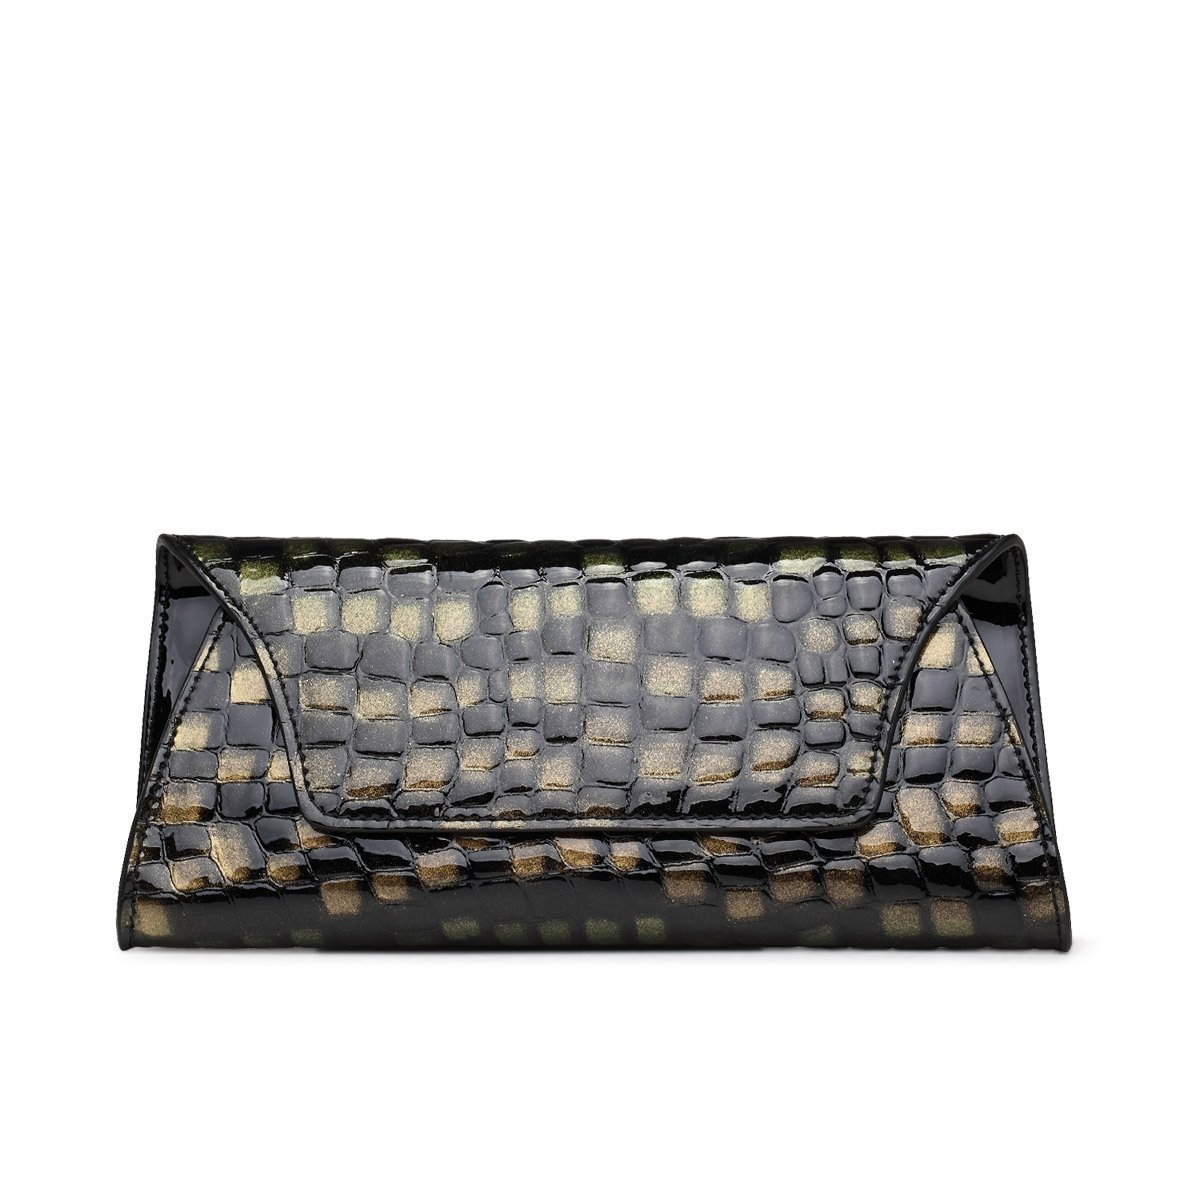 Bronze Black Cowhide Genuine Leather Embossed Crocodile Envelope Evening Clutch Luxury Expensive Casual Party Women Small Flap Bag